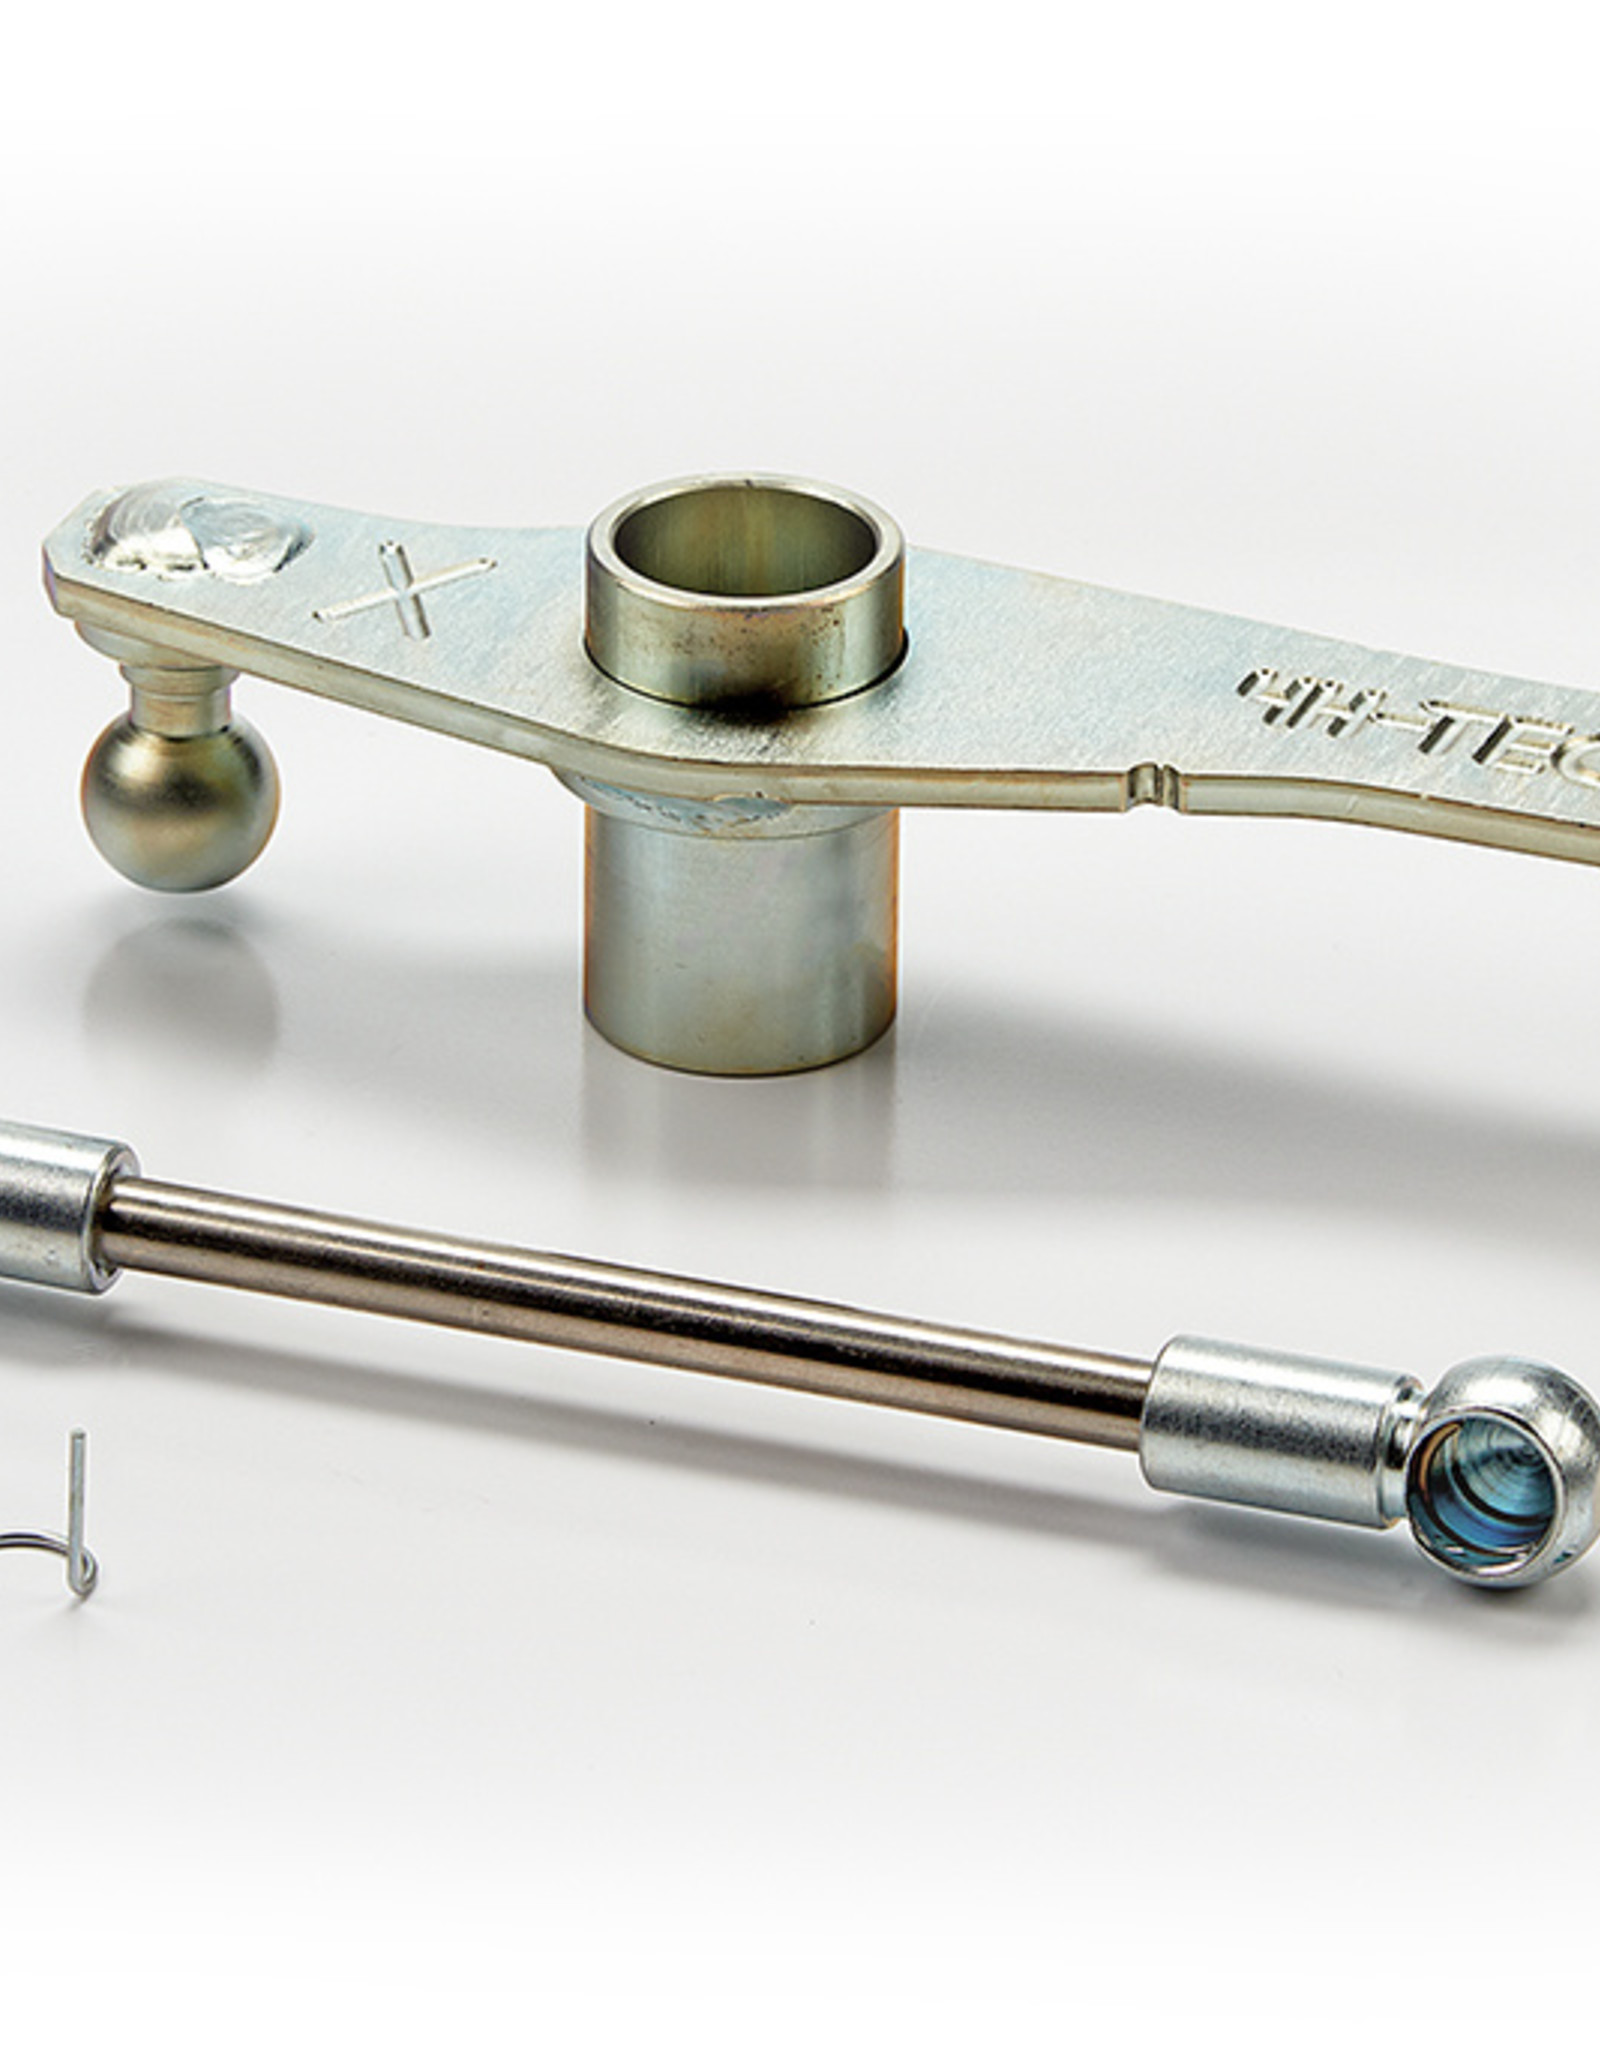 4H-TECH Short Shifter type X-Shift for Opel and Vauxhall